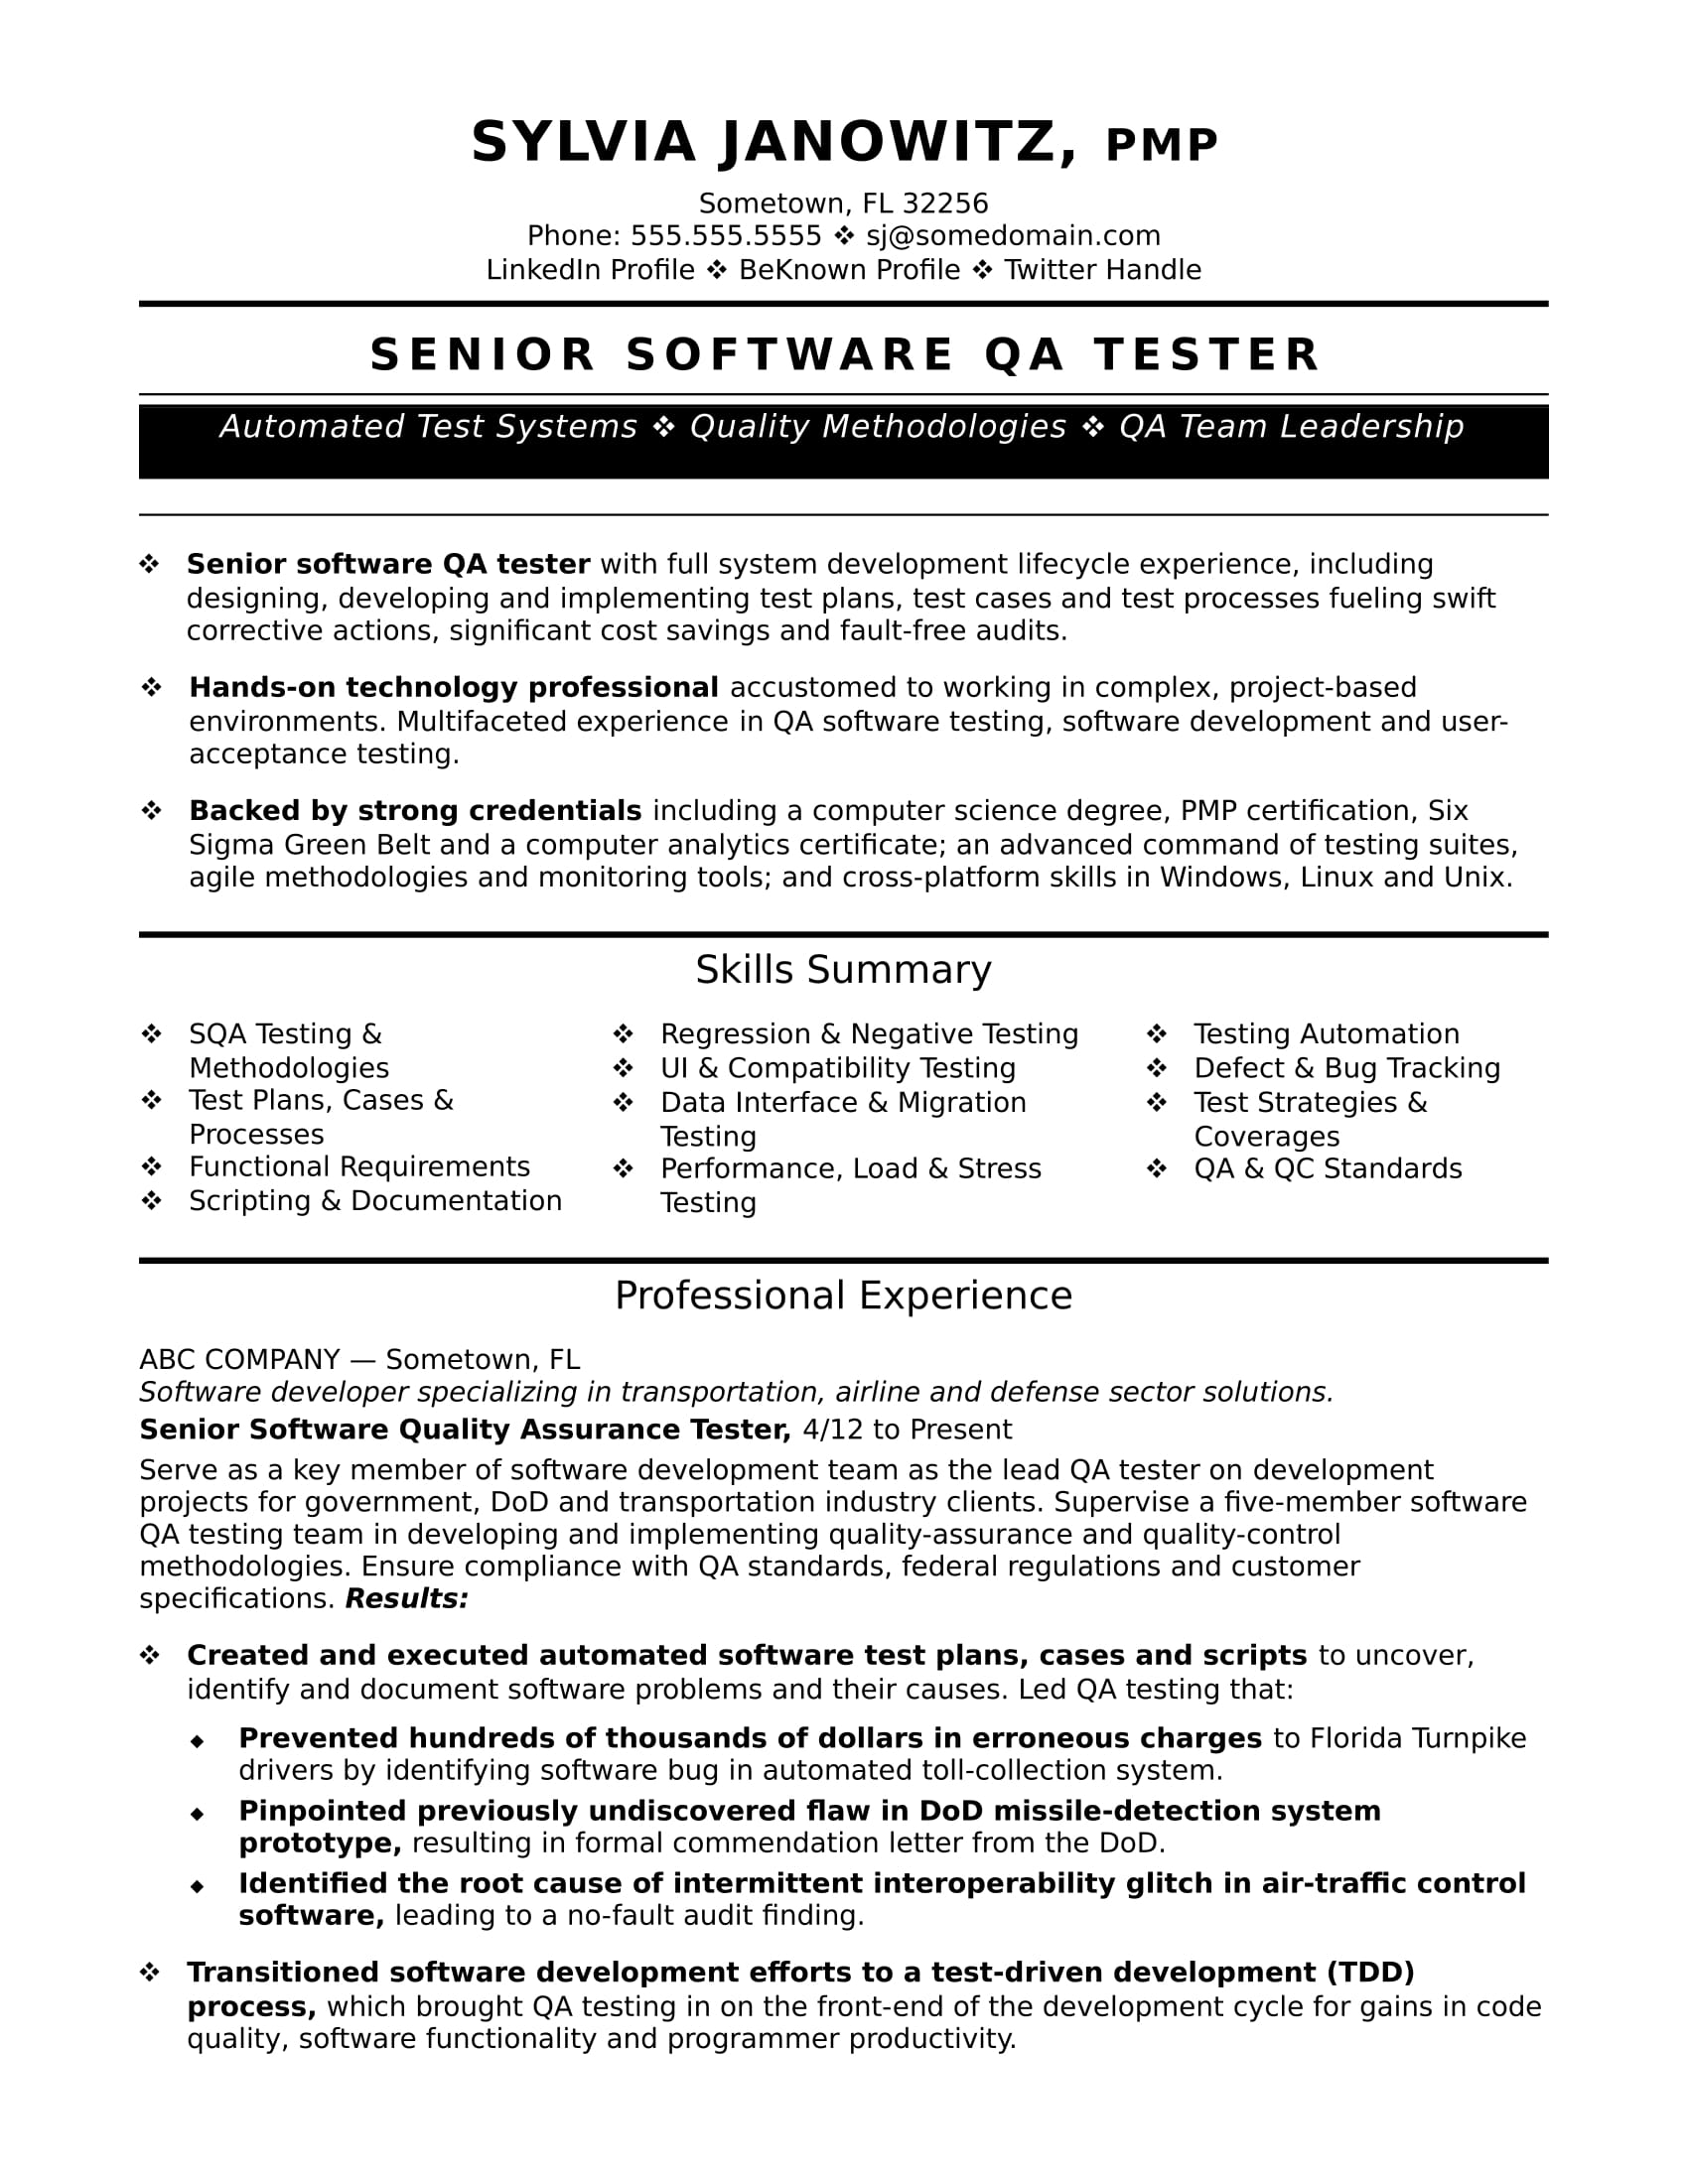 Software Professional Resume Samples Experienced Qa Software Tester Resume Sample Monster